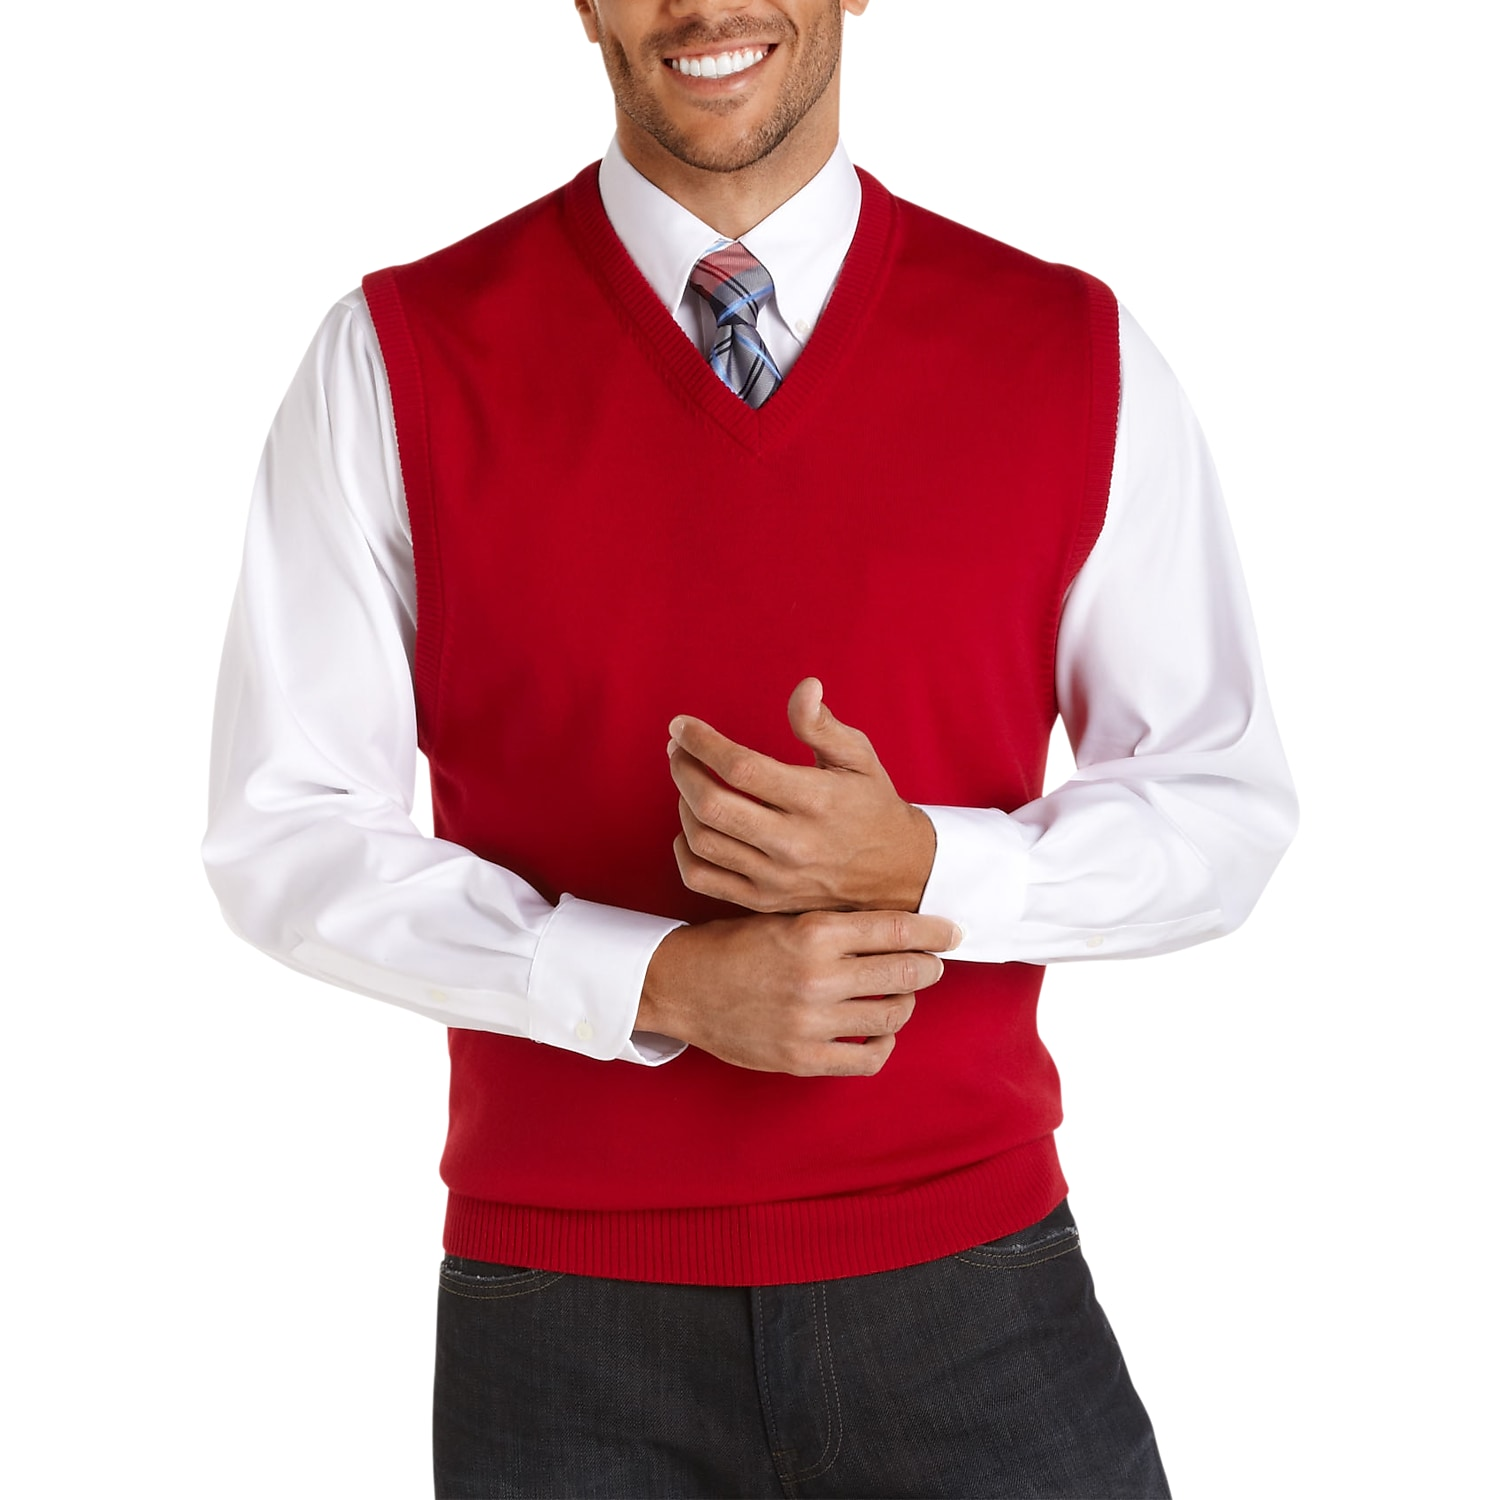 Pronto Uomo Red Merino Vest Sweater - Men's Sweater Vests | Men's ...